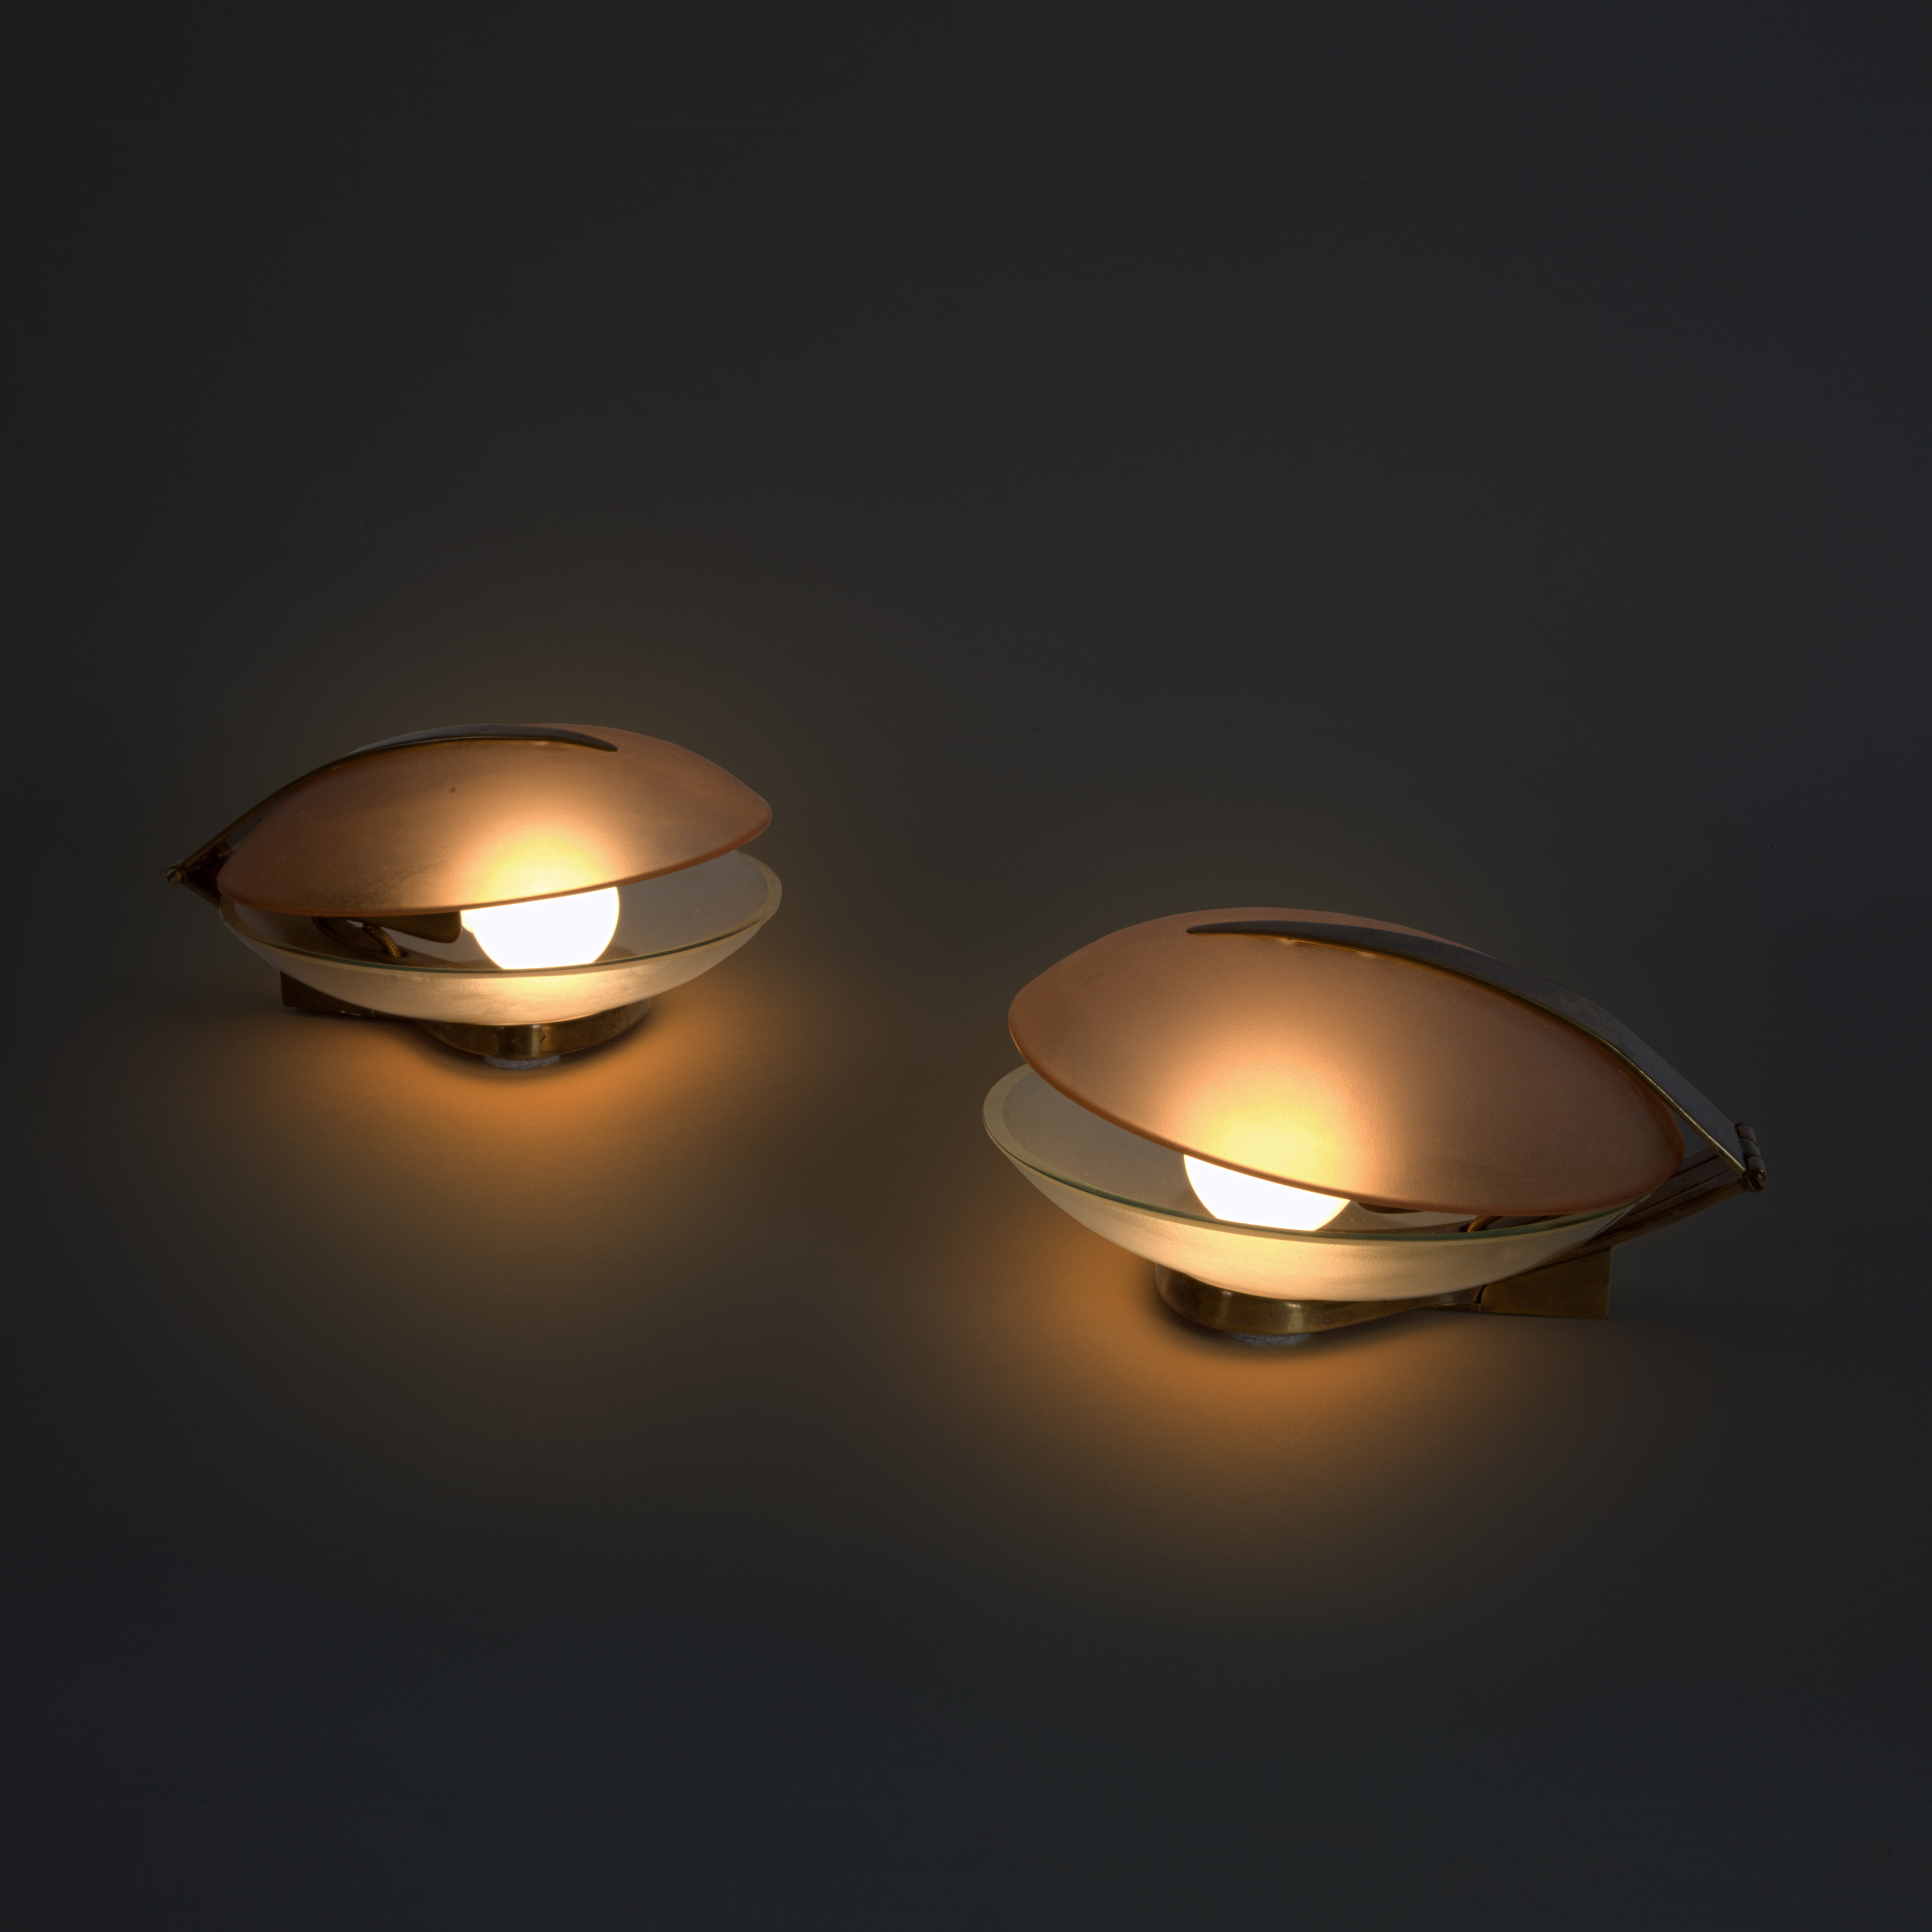 Pair of Table Lamps by Max Ingrand for Fontana Arte | soyun k.